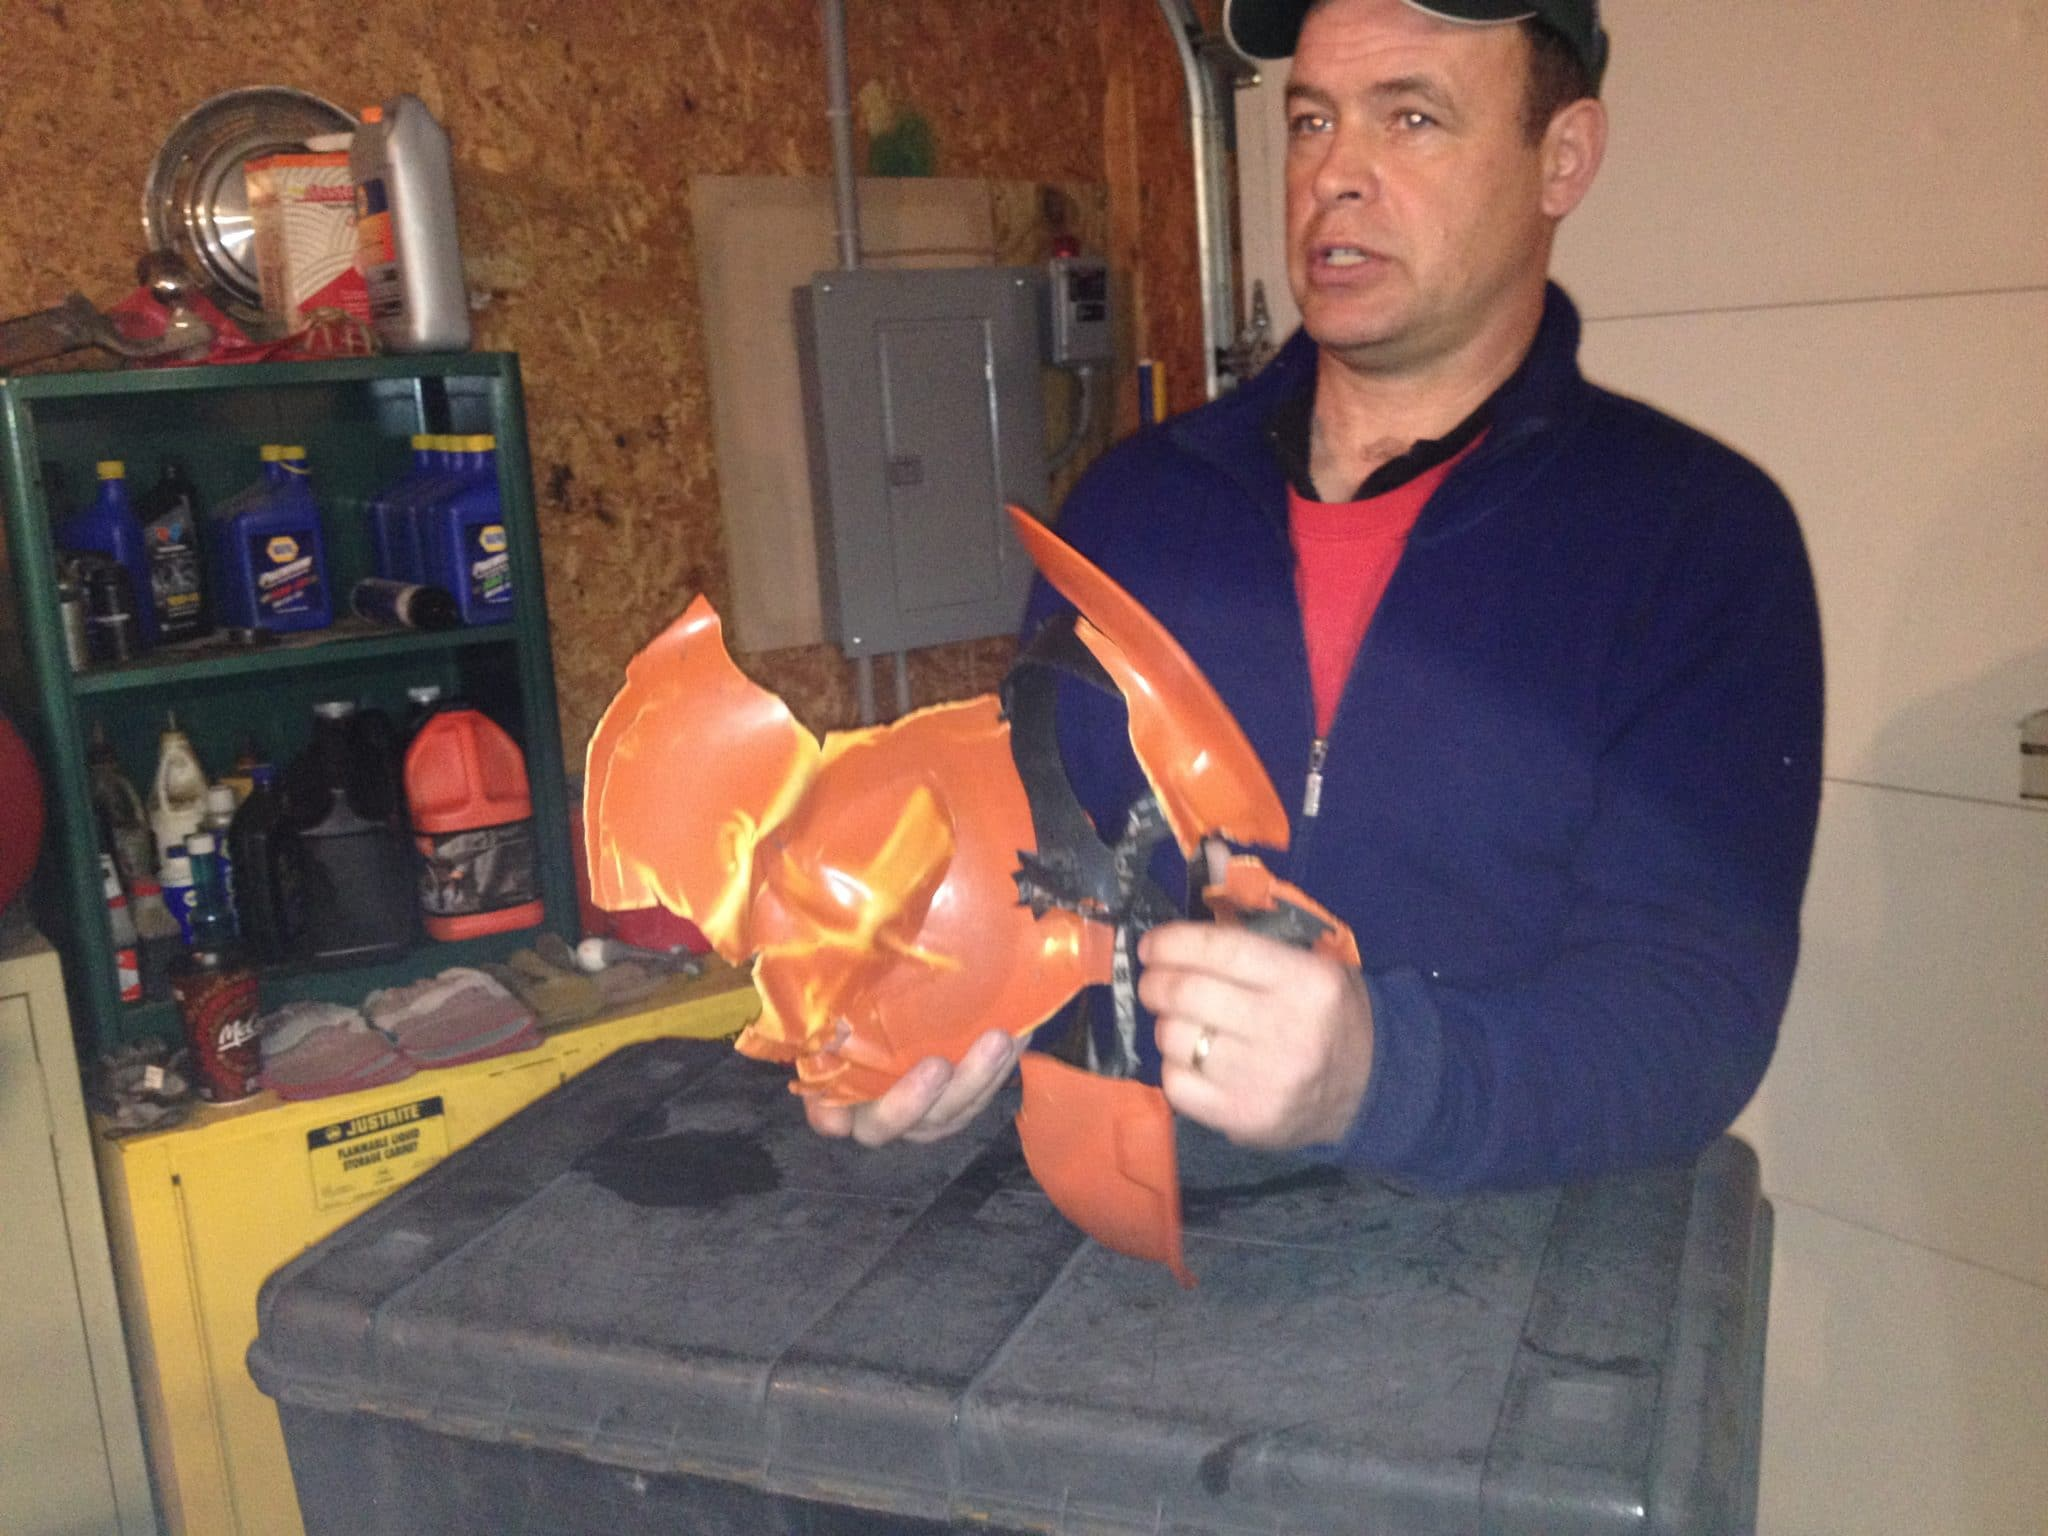 Personal Protective Equipment: Chainsaw Safety, Part 2